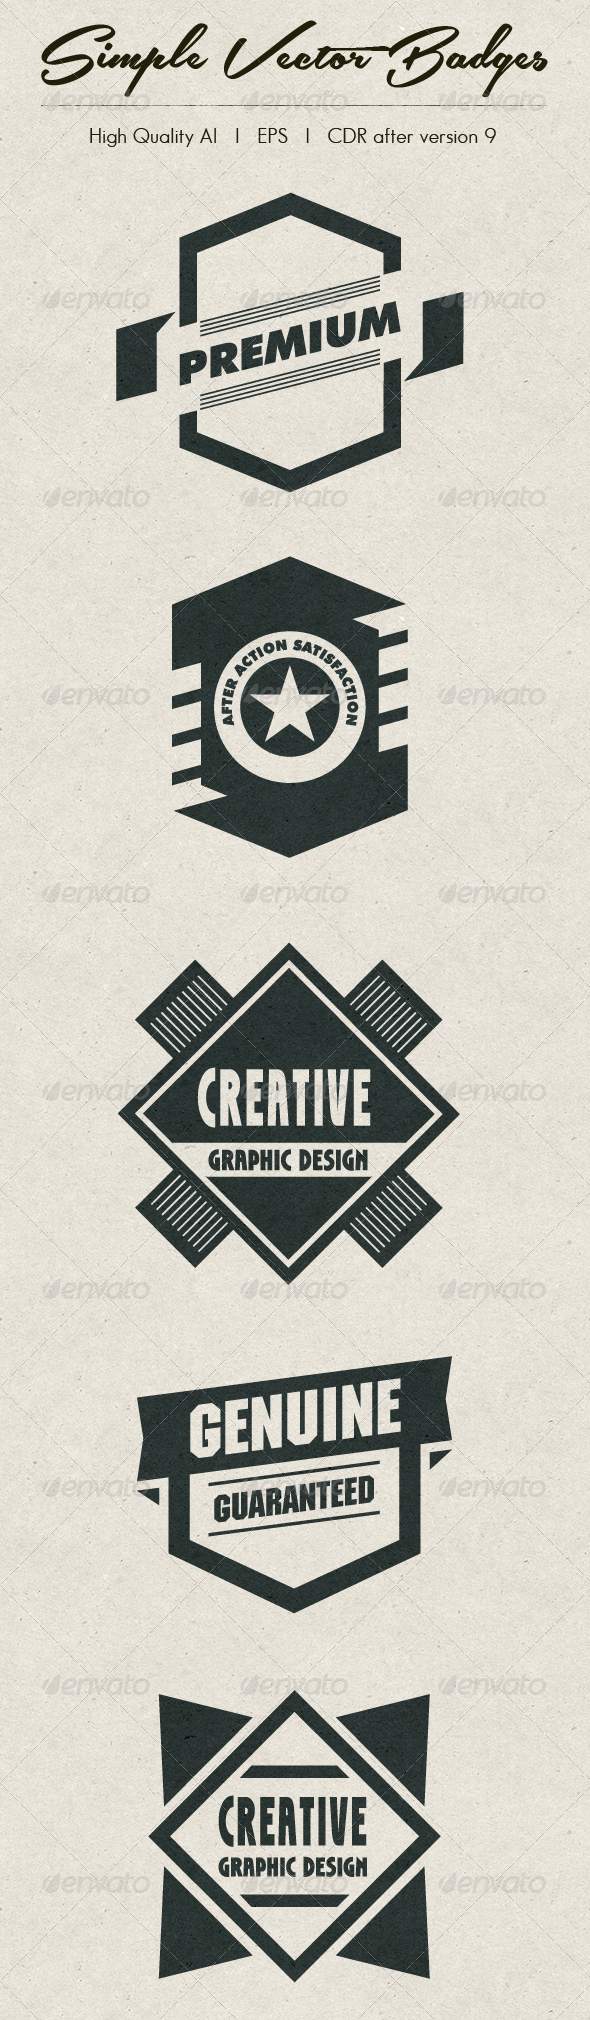 GraphicRiver Simple Vector Badges 4180648